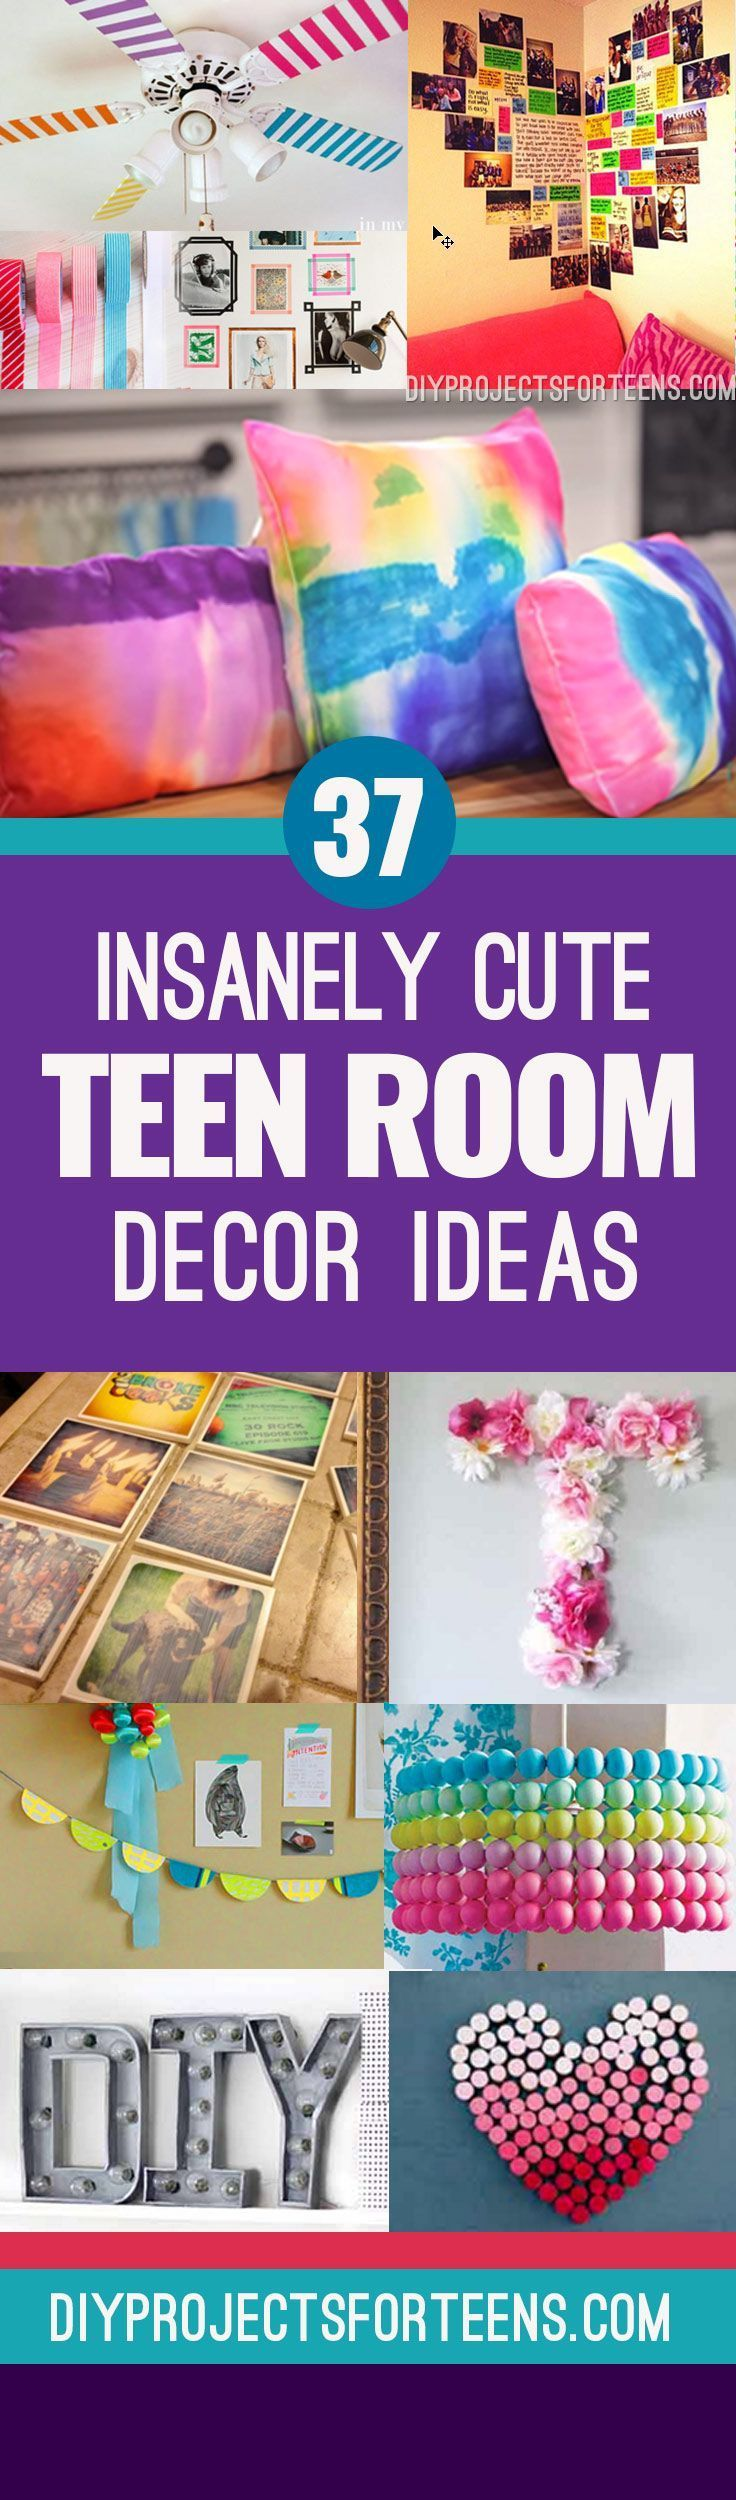 37 insanely cute teen bedroom ideas for diy decor girls